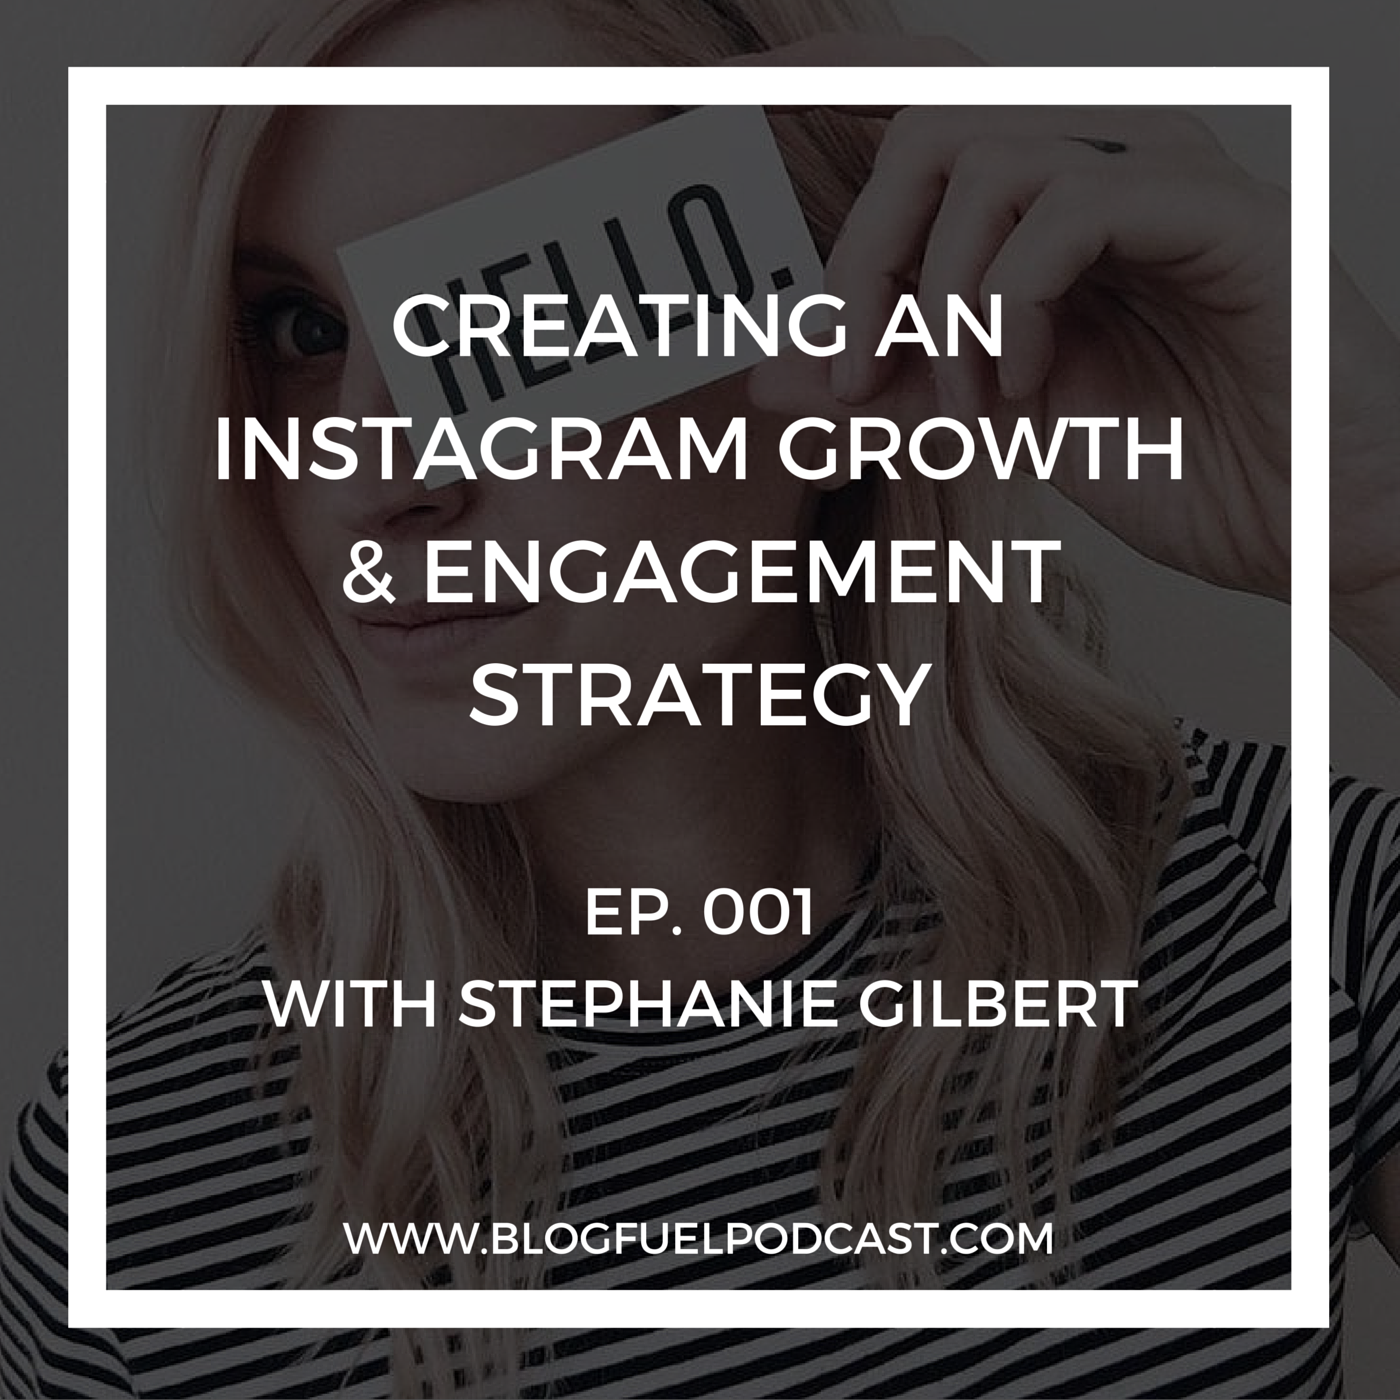 In Blog Fuel podcast Ep. 001, Stephanie Gilbert from Small Talk Social shares Instagram growth & engagement strategies for bloggers and creative entrepreneurs.